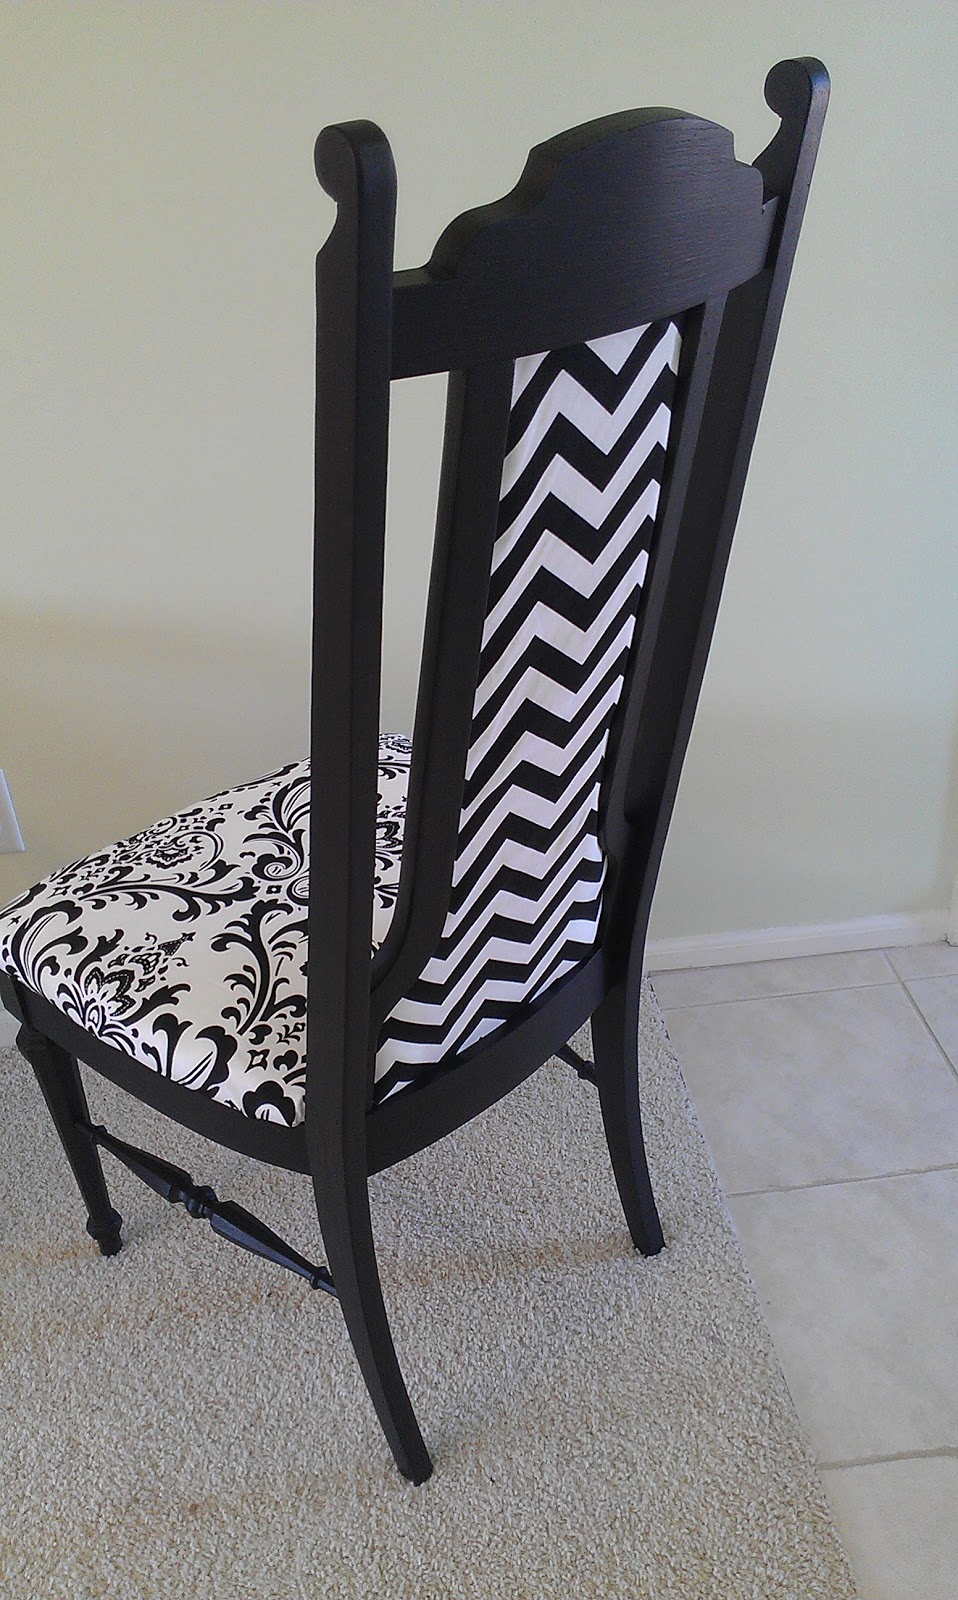 Thrifty Treasures: How to fix a broken chair leg - photo#41